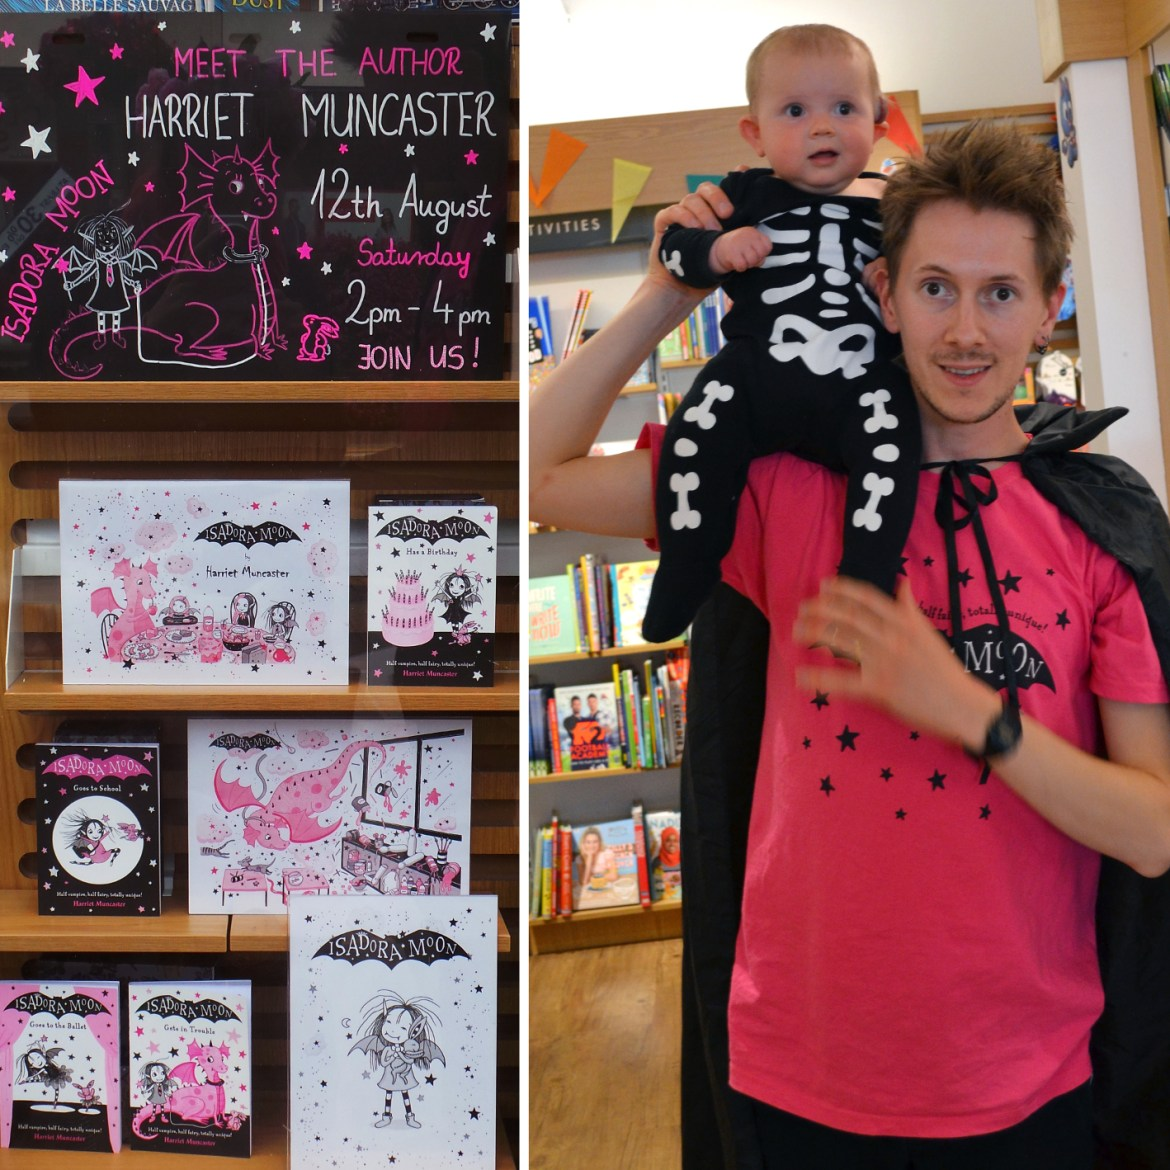 The full pink-and-black window display at Watford Waterstones and Henry and Celestine in their event outfits